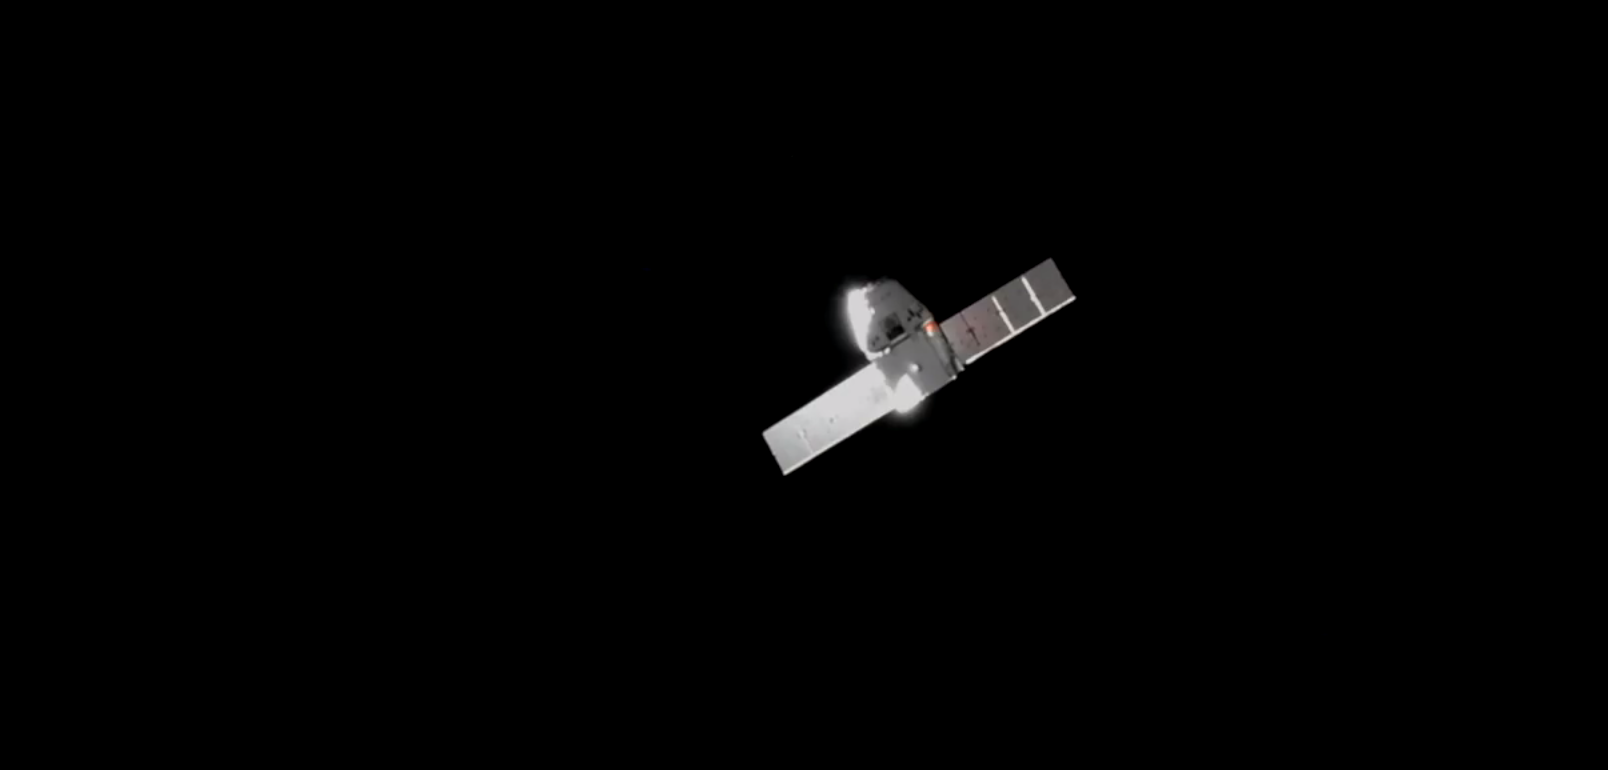 The SpaceX Dragon capsule approaches the International Space Station on Sunday.